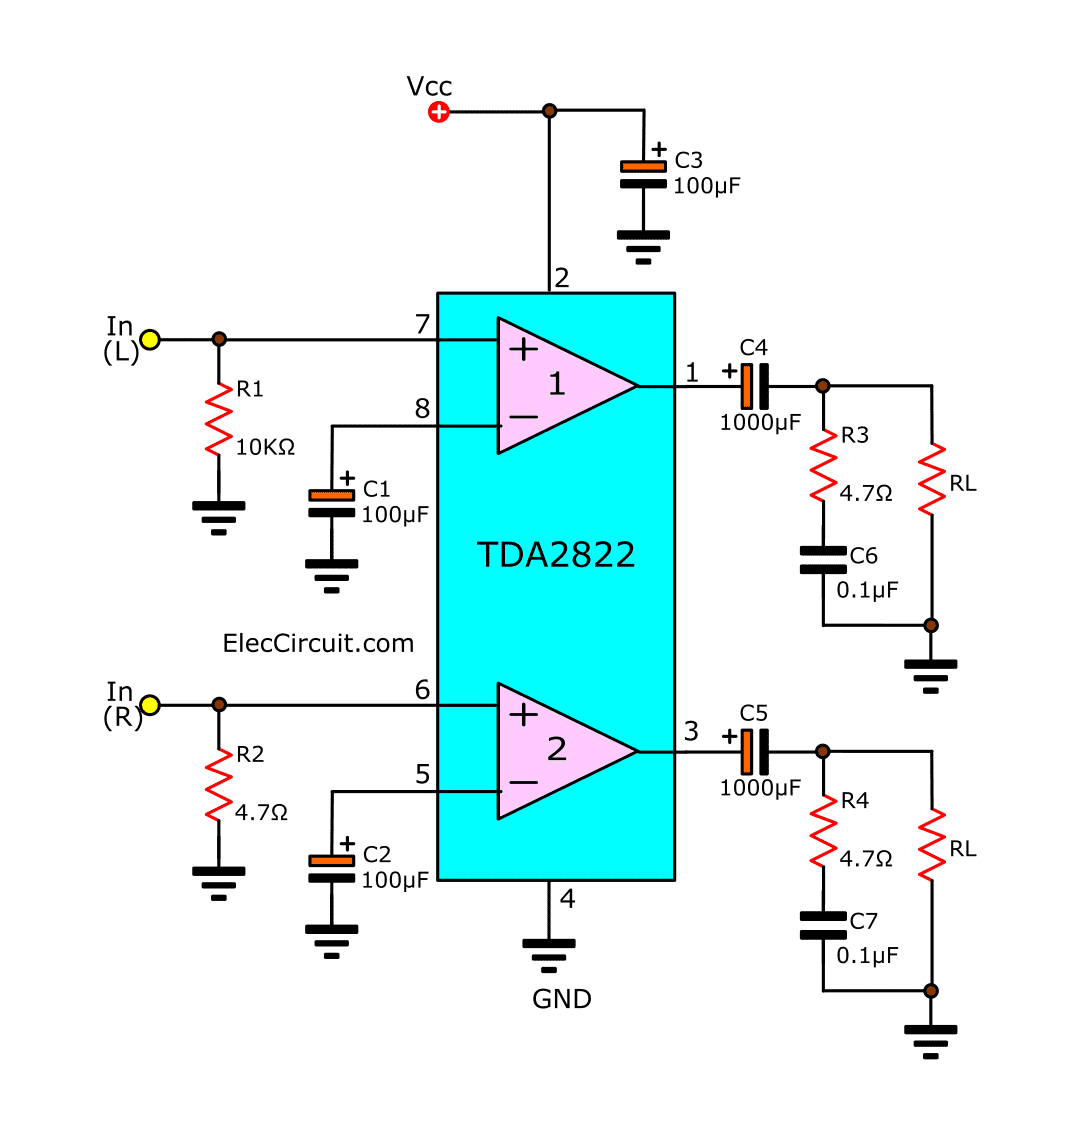 Tda2822 stereo amplifier datasheet eleccircuit the typical application stereo ccuart Choice Image